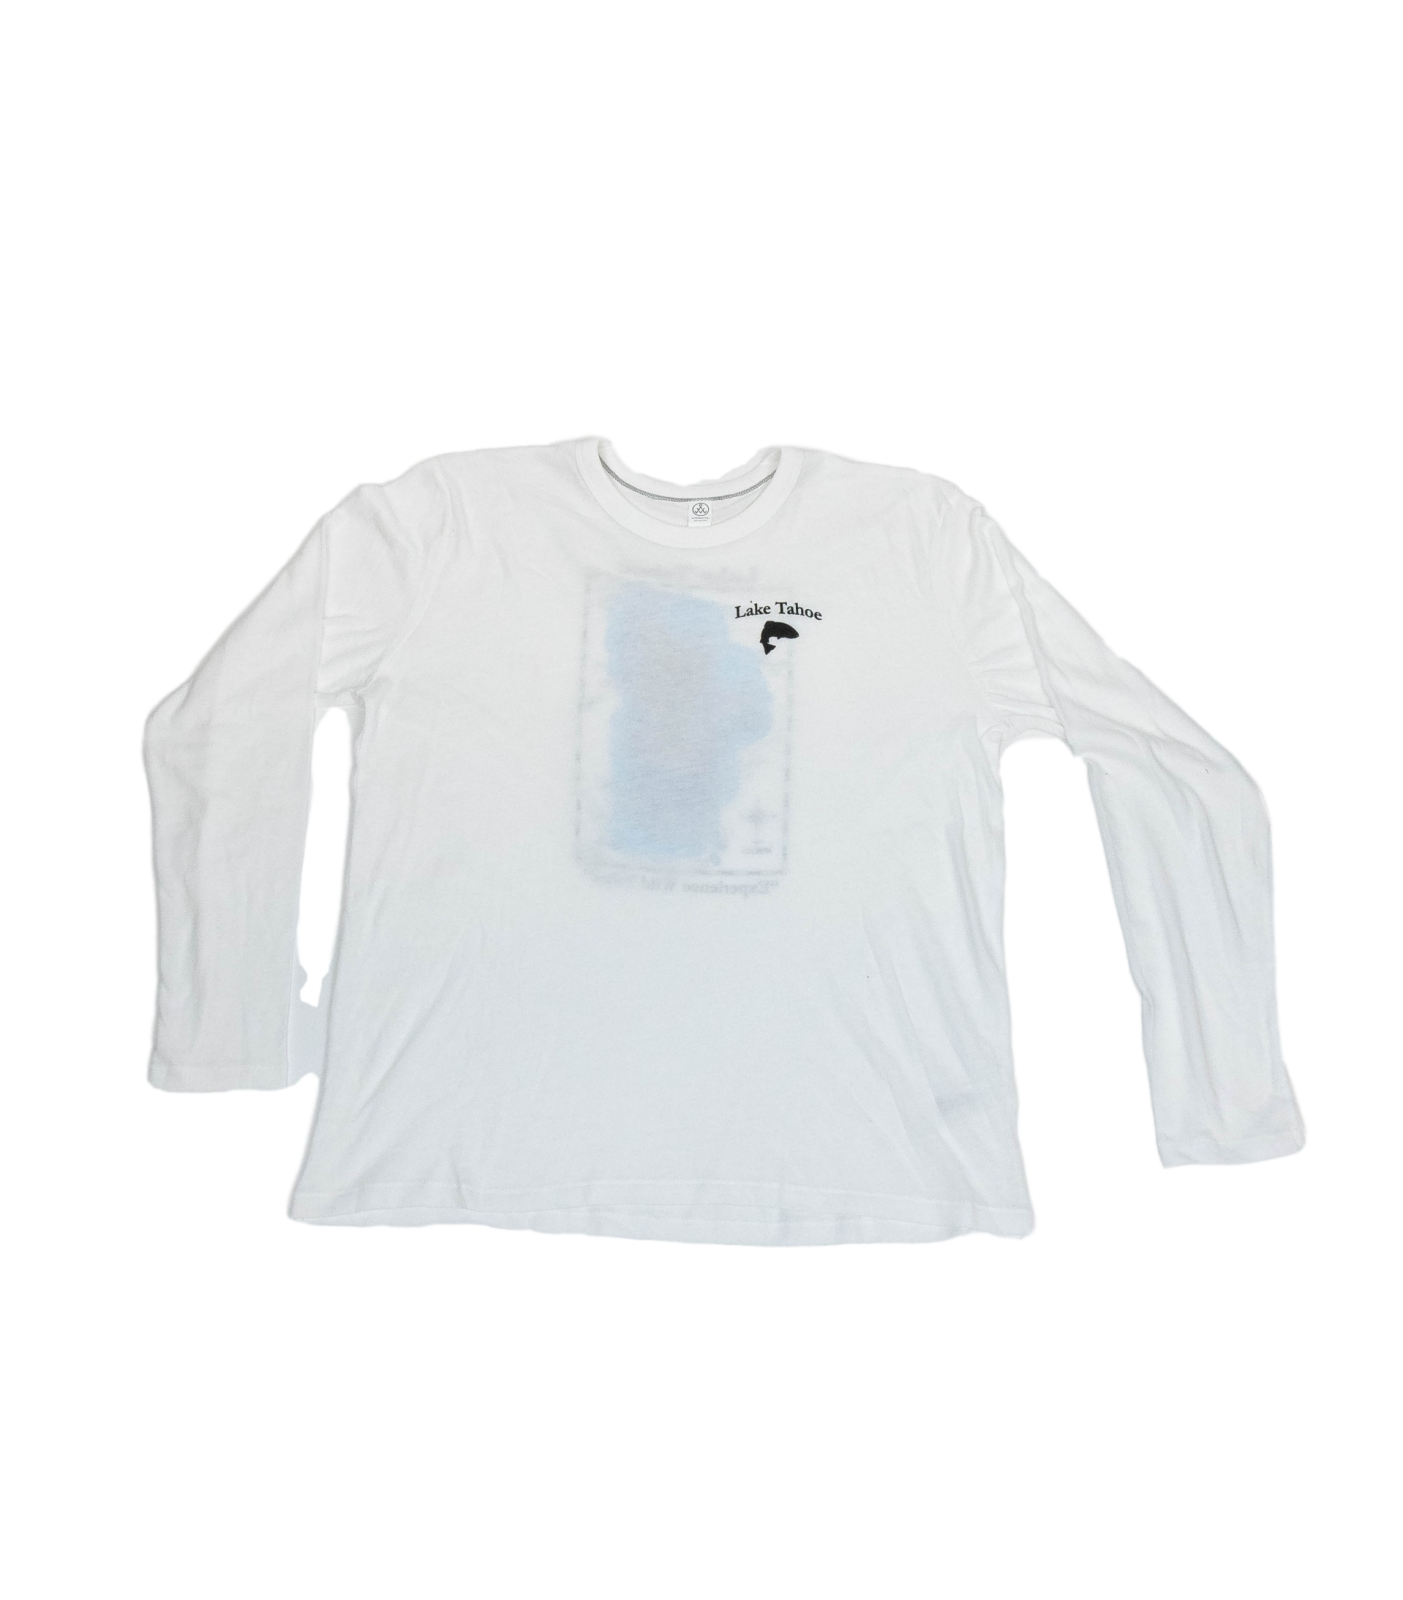 Lake Tahoe Long Sleeve White